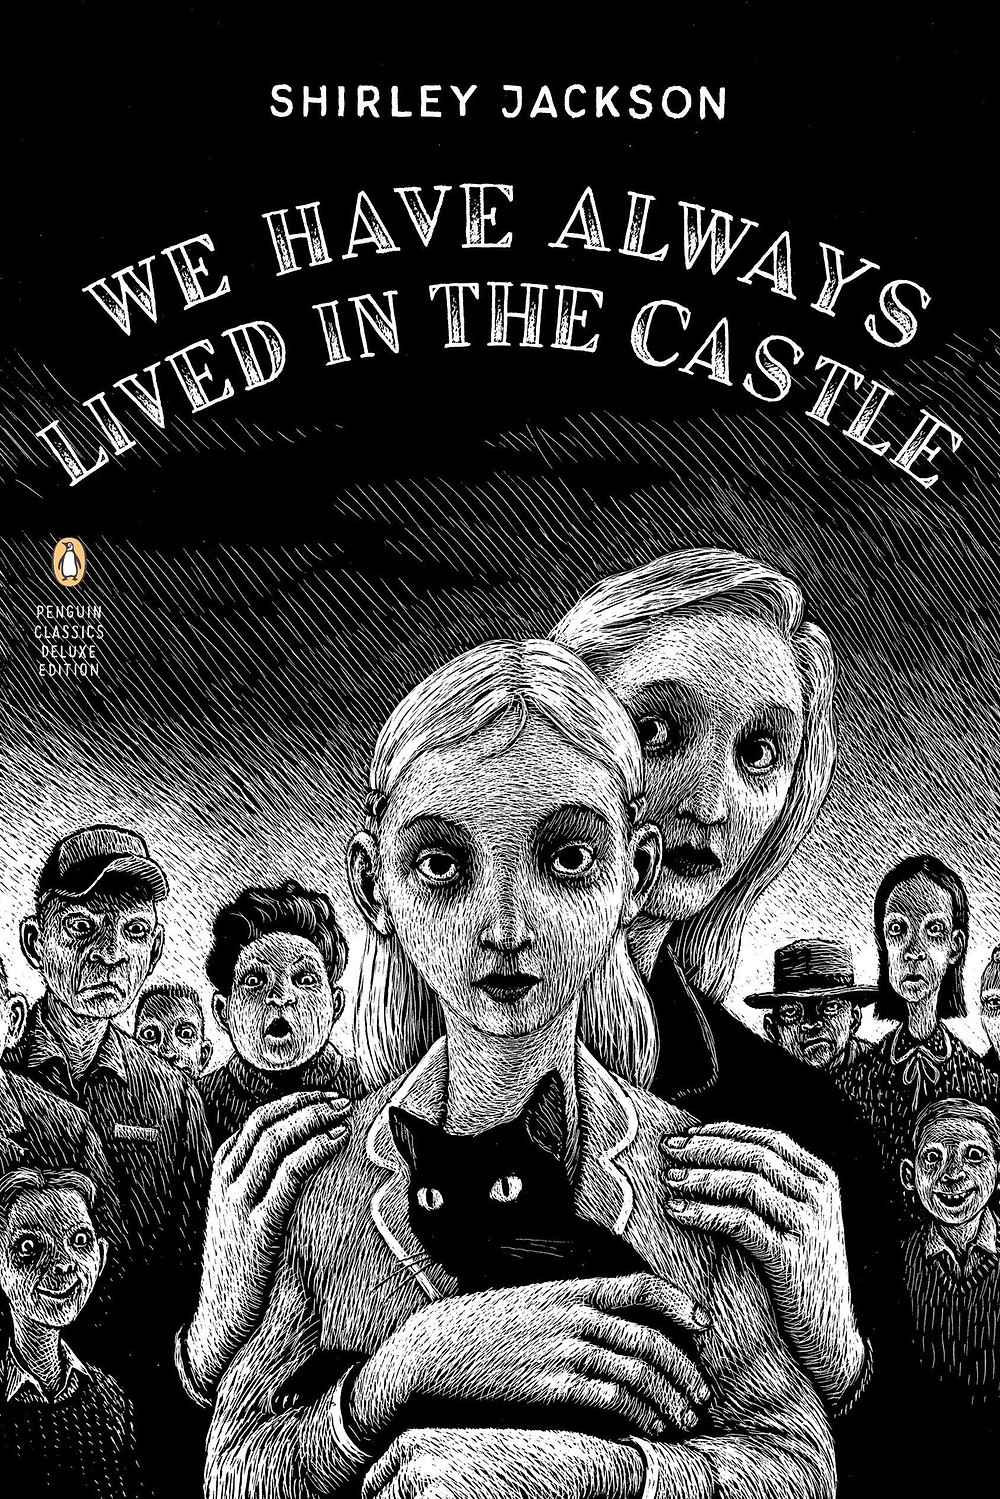 We Have Always Lived In The Castle by Shirley Jackson thebookslut Jonathan Lethem (Introduction by) Shirley Jackson (Author) Thomas Ott (Illustrator) Shirley Jackson's beloved gothic tale of a peculiar girl named Merricat and her family's dark secret Taking readers deep into a labyrinth of dark neurosis, We Have Always Lived in the Castle is a deliciously unsettling novel about a perverse, isolated, and possibly murderous family and the struggle that ensues when a cousin arrives at their estate. This edition features a new introduction by Jonathan Lethem. For more than seventy years, Penguin has been the leading publisher of classic literature in the English-speaking world. With more than 1,700 titles, Penguin Classics represents a global bookshelf of the best works throughout history and across genres and disciplines. Readers trust the series to provide authoritative texts enhanced by introductions and notes by distinguished scholars and contemporary authors, as well as up-to-date translations by award-winning translators. Product Details Price: $17.00  $15.64 Publisher: Penguin Books Published Date: October 31, 2006 Pages: 146 Dimensions: 5.69 X 0.63 X 8.38 inches | 0.42 pounds Language: English Type: Paperback ISBN: 9780143039976 BISAC Categories: Literary thebookslut